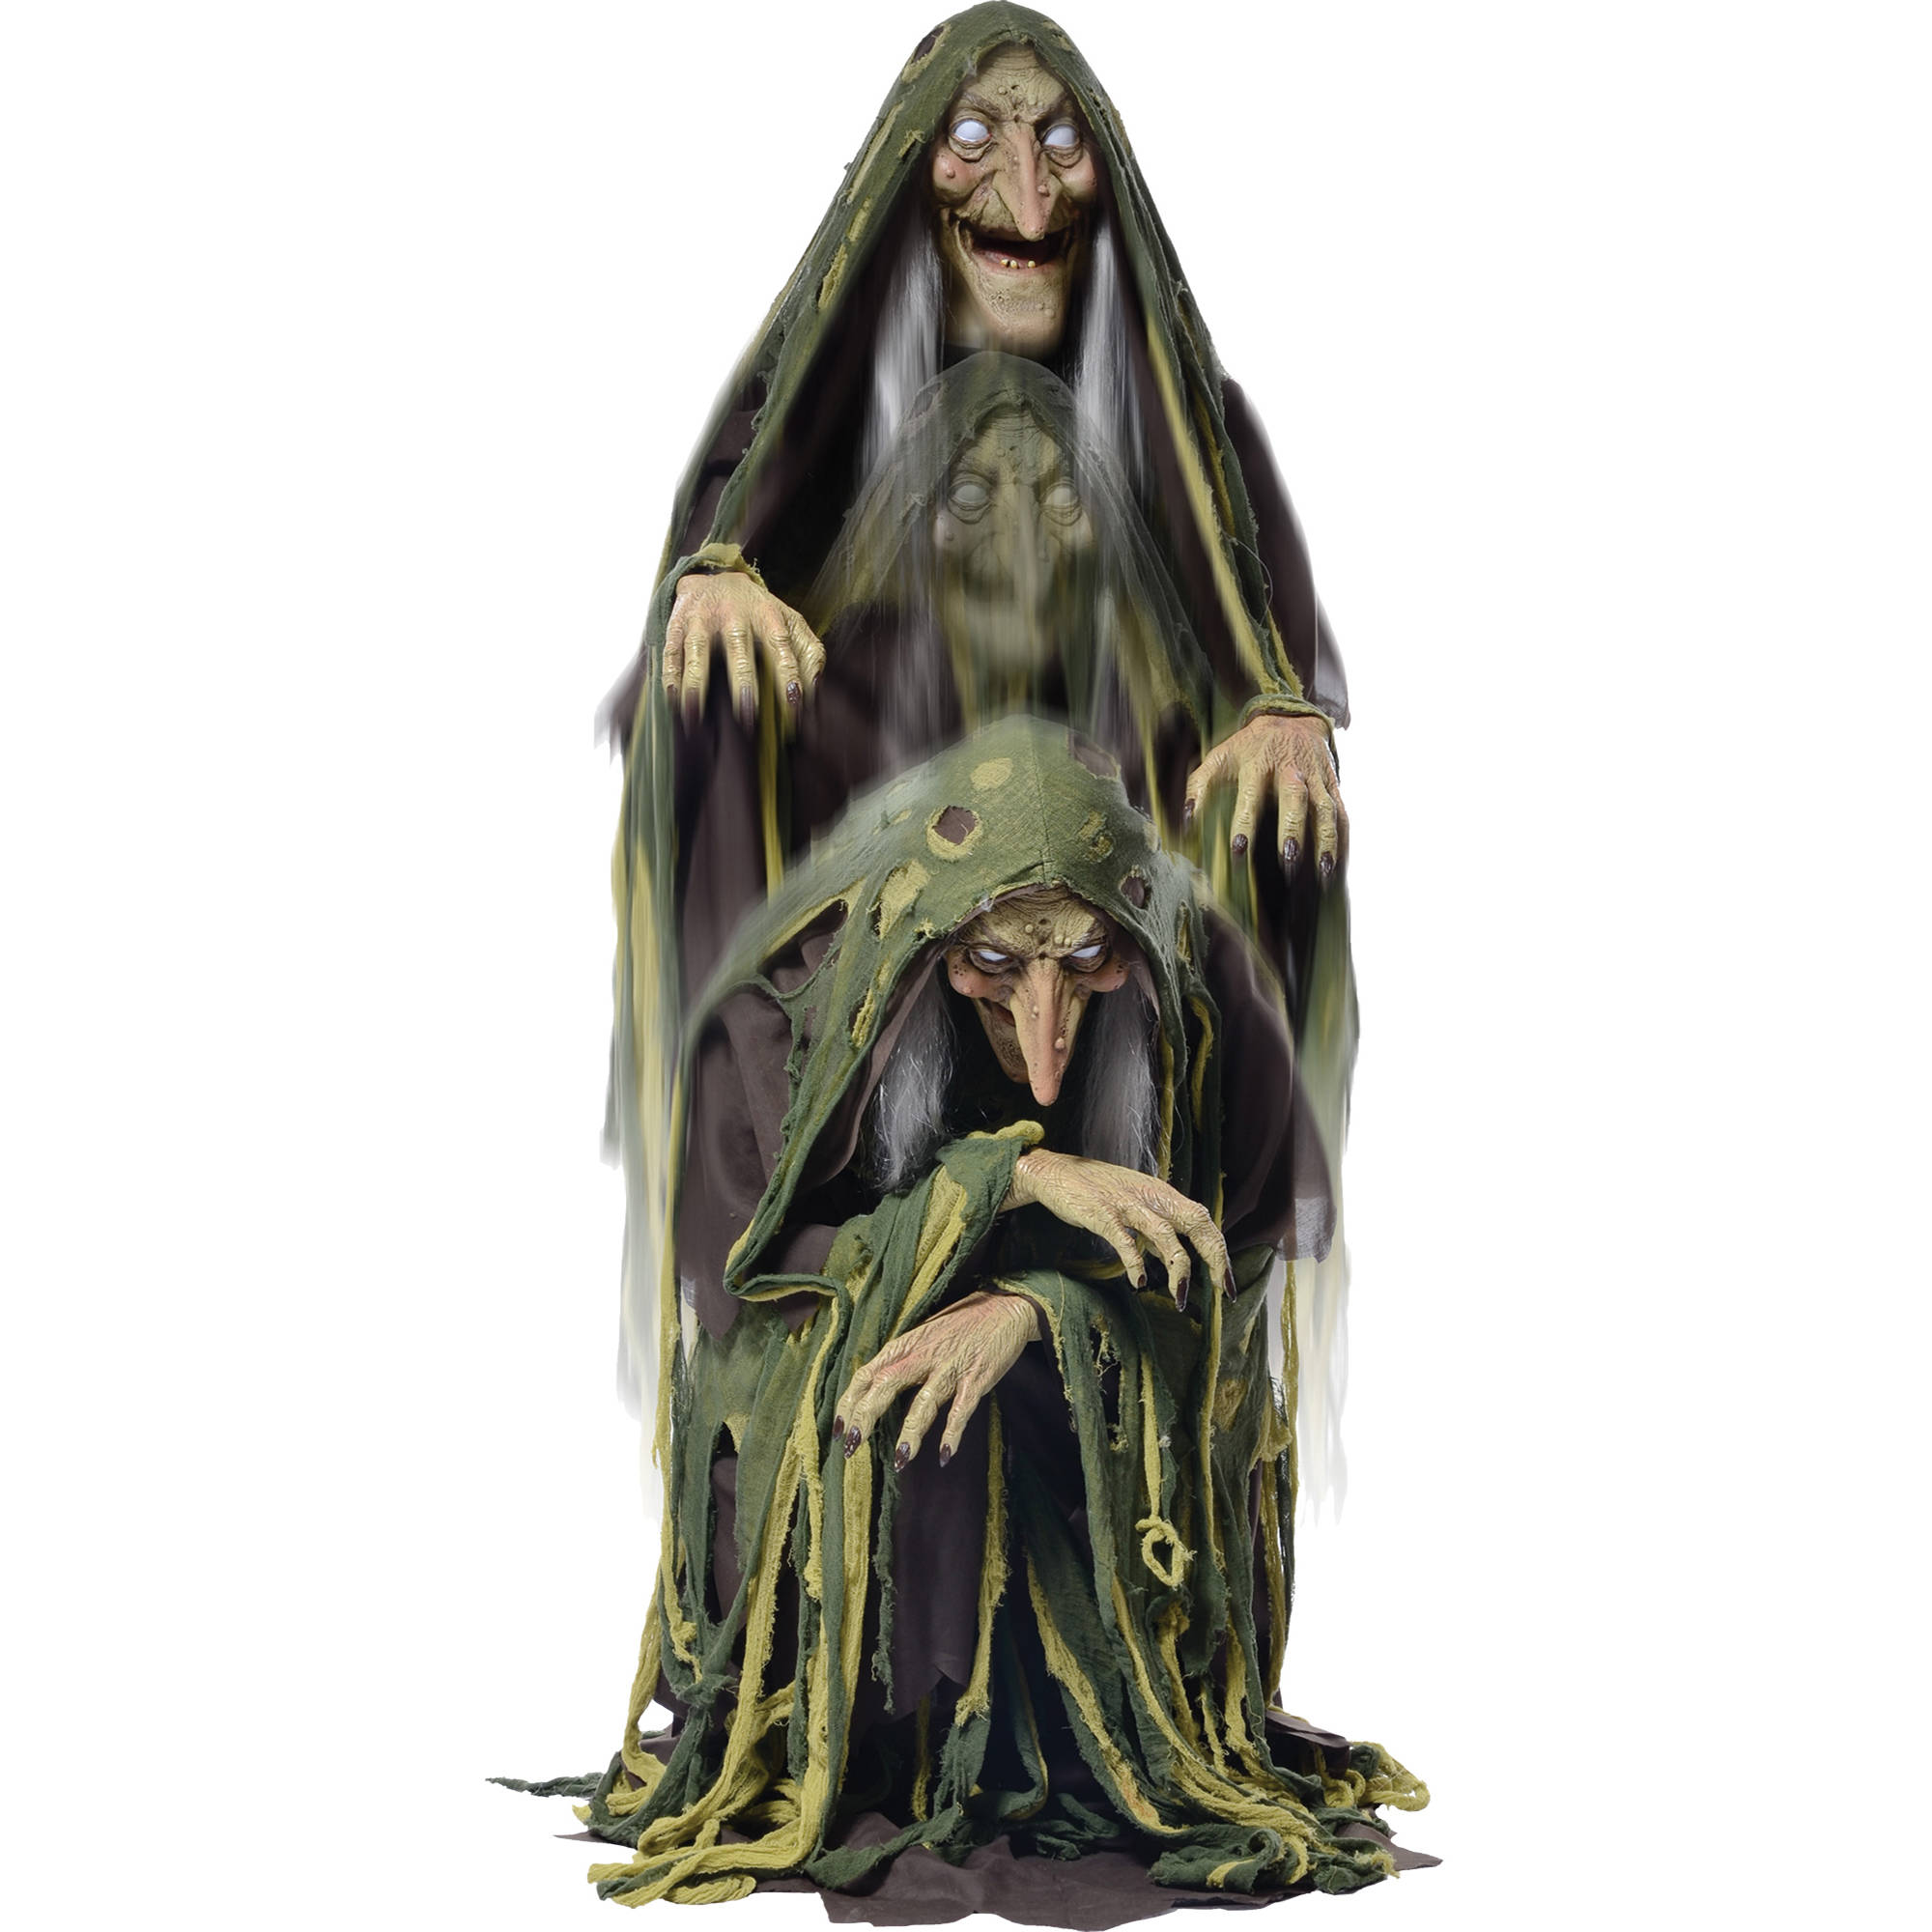 Swamp Hag Rising Animated Halloween Decoration